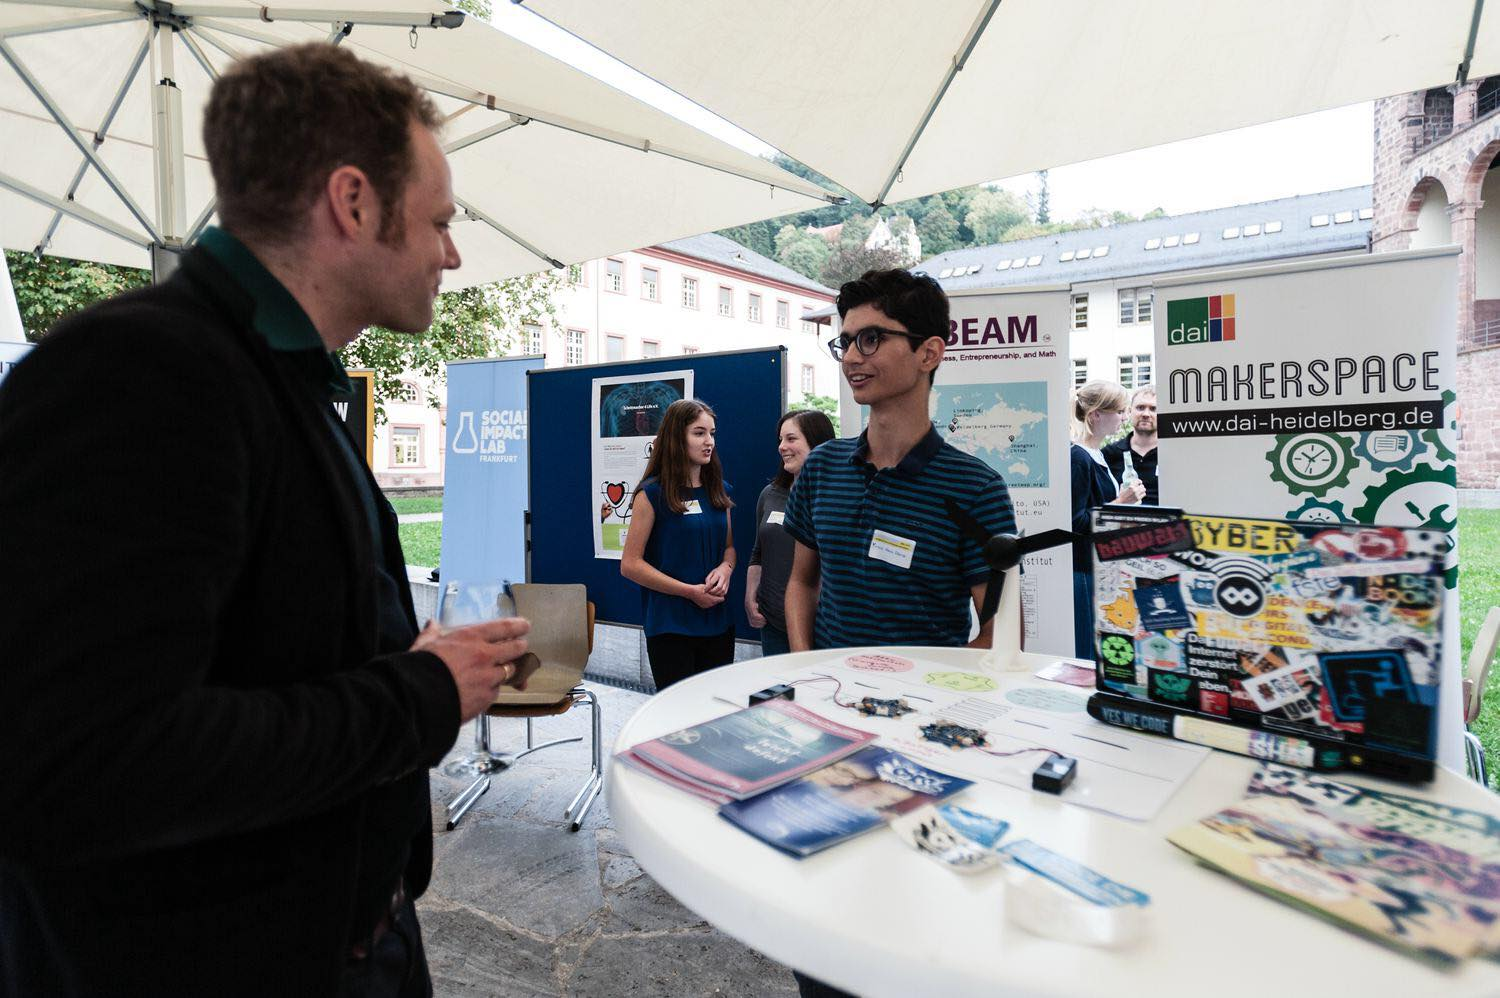 Our Impact - Worldwide, BEAM has brought influential curriculum and fantastic opportunities to numerous communities, schools, and companies. Projects that BEAM students complete help advance the efforts of companies, have a social impact, and teach students valuable communication and collaboration skills, as well as skills in data analysis, marketing, business strategy, and more. Scroll down to see our impact statistics and learn more.